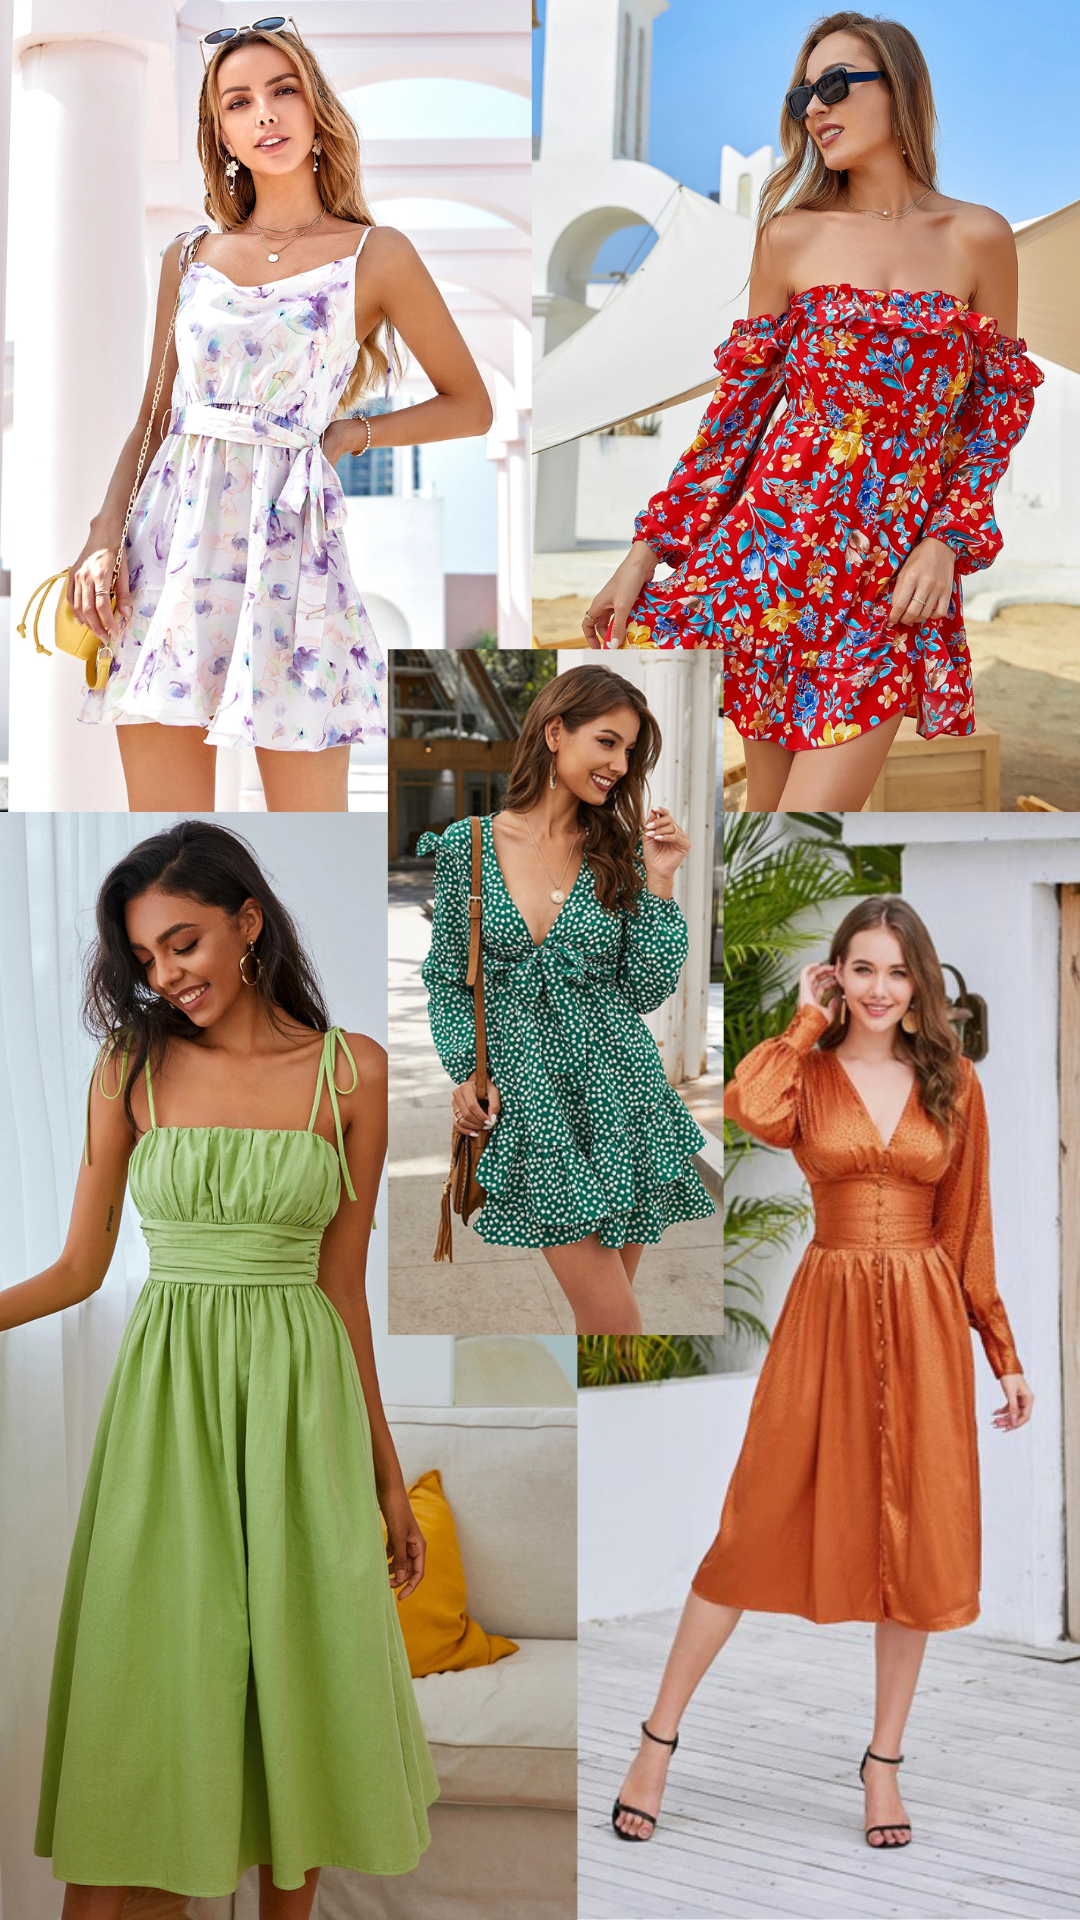 Top 5 Wedding Guest Dresses for Less Than $20